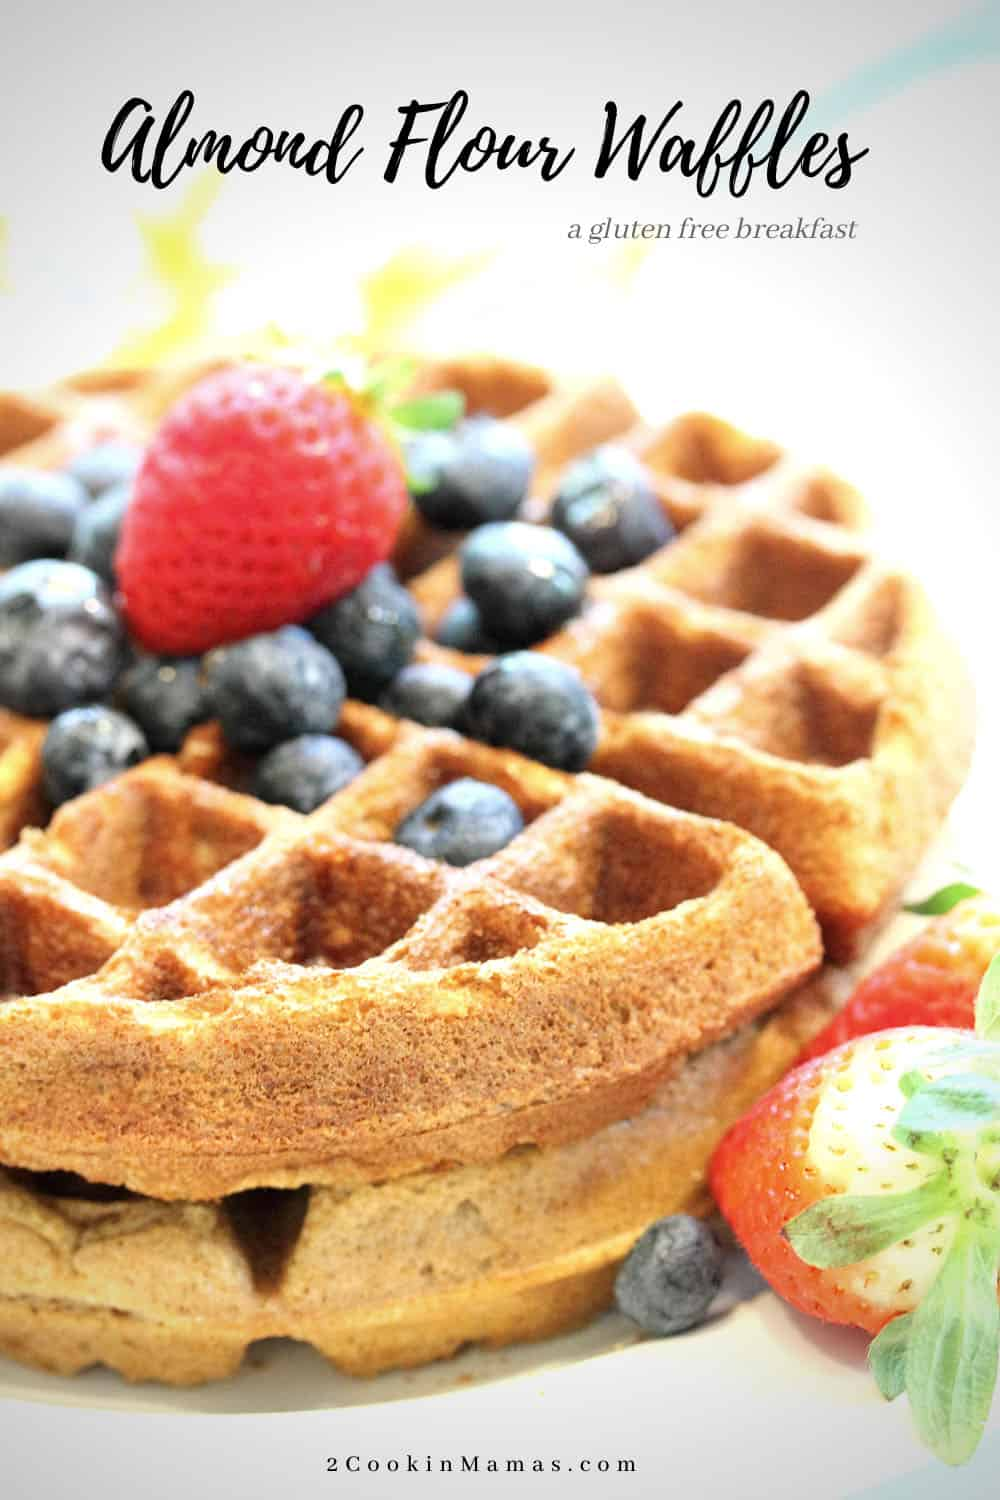 Buttermilk Almond Flour Waffles